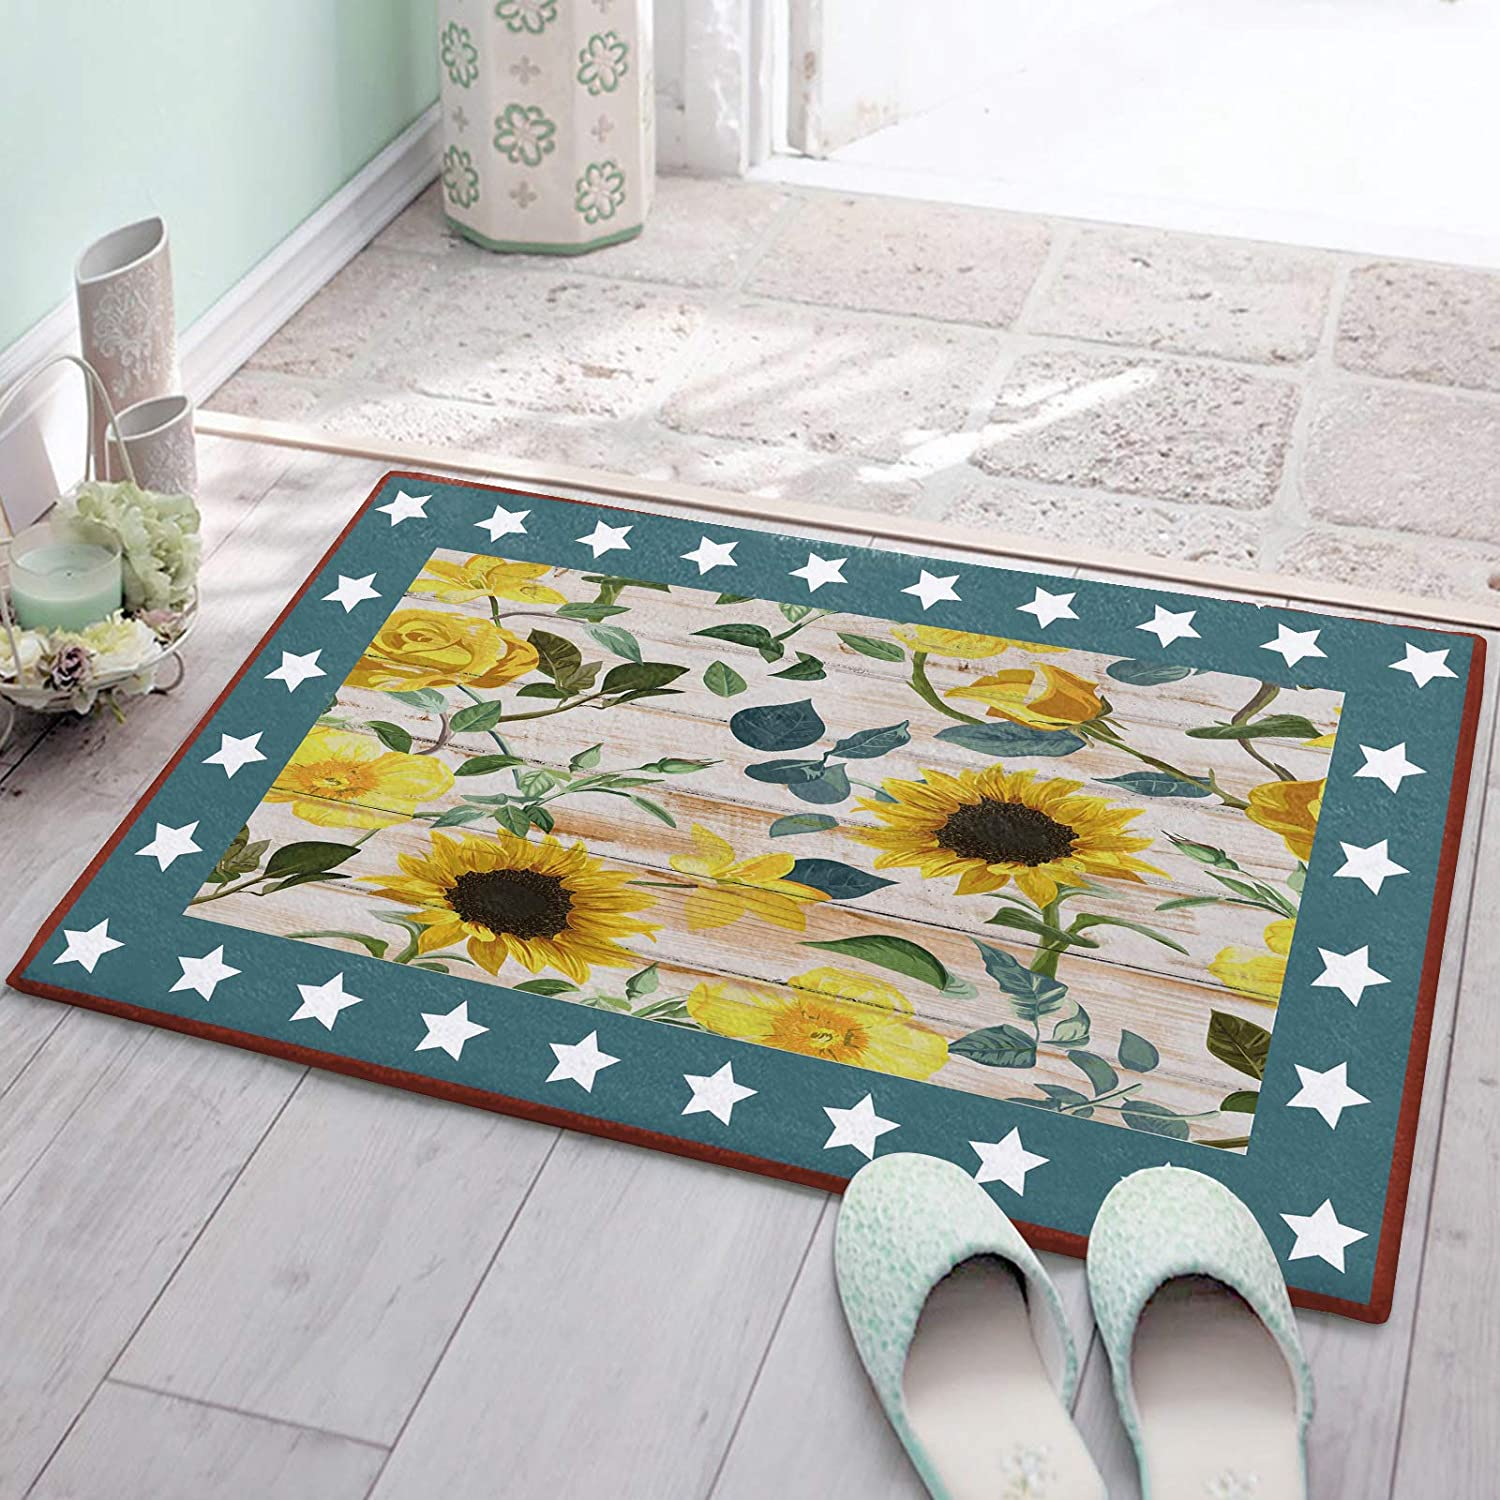 CozyPlushDoormats 18x30in AbsorbentCushionedKitchenMatAre Our Manufacturer direct delivery shop OFFers the best service